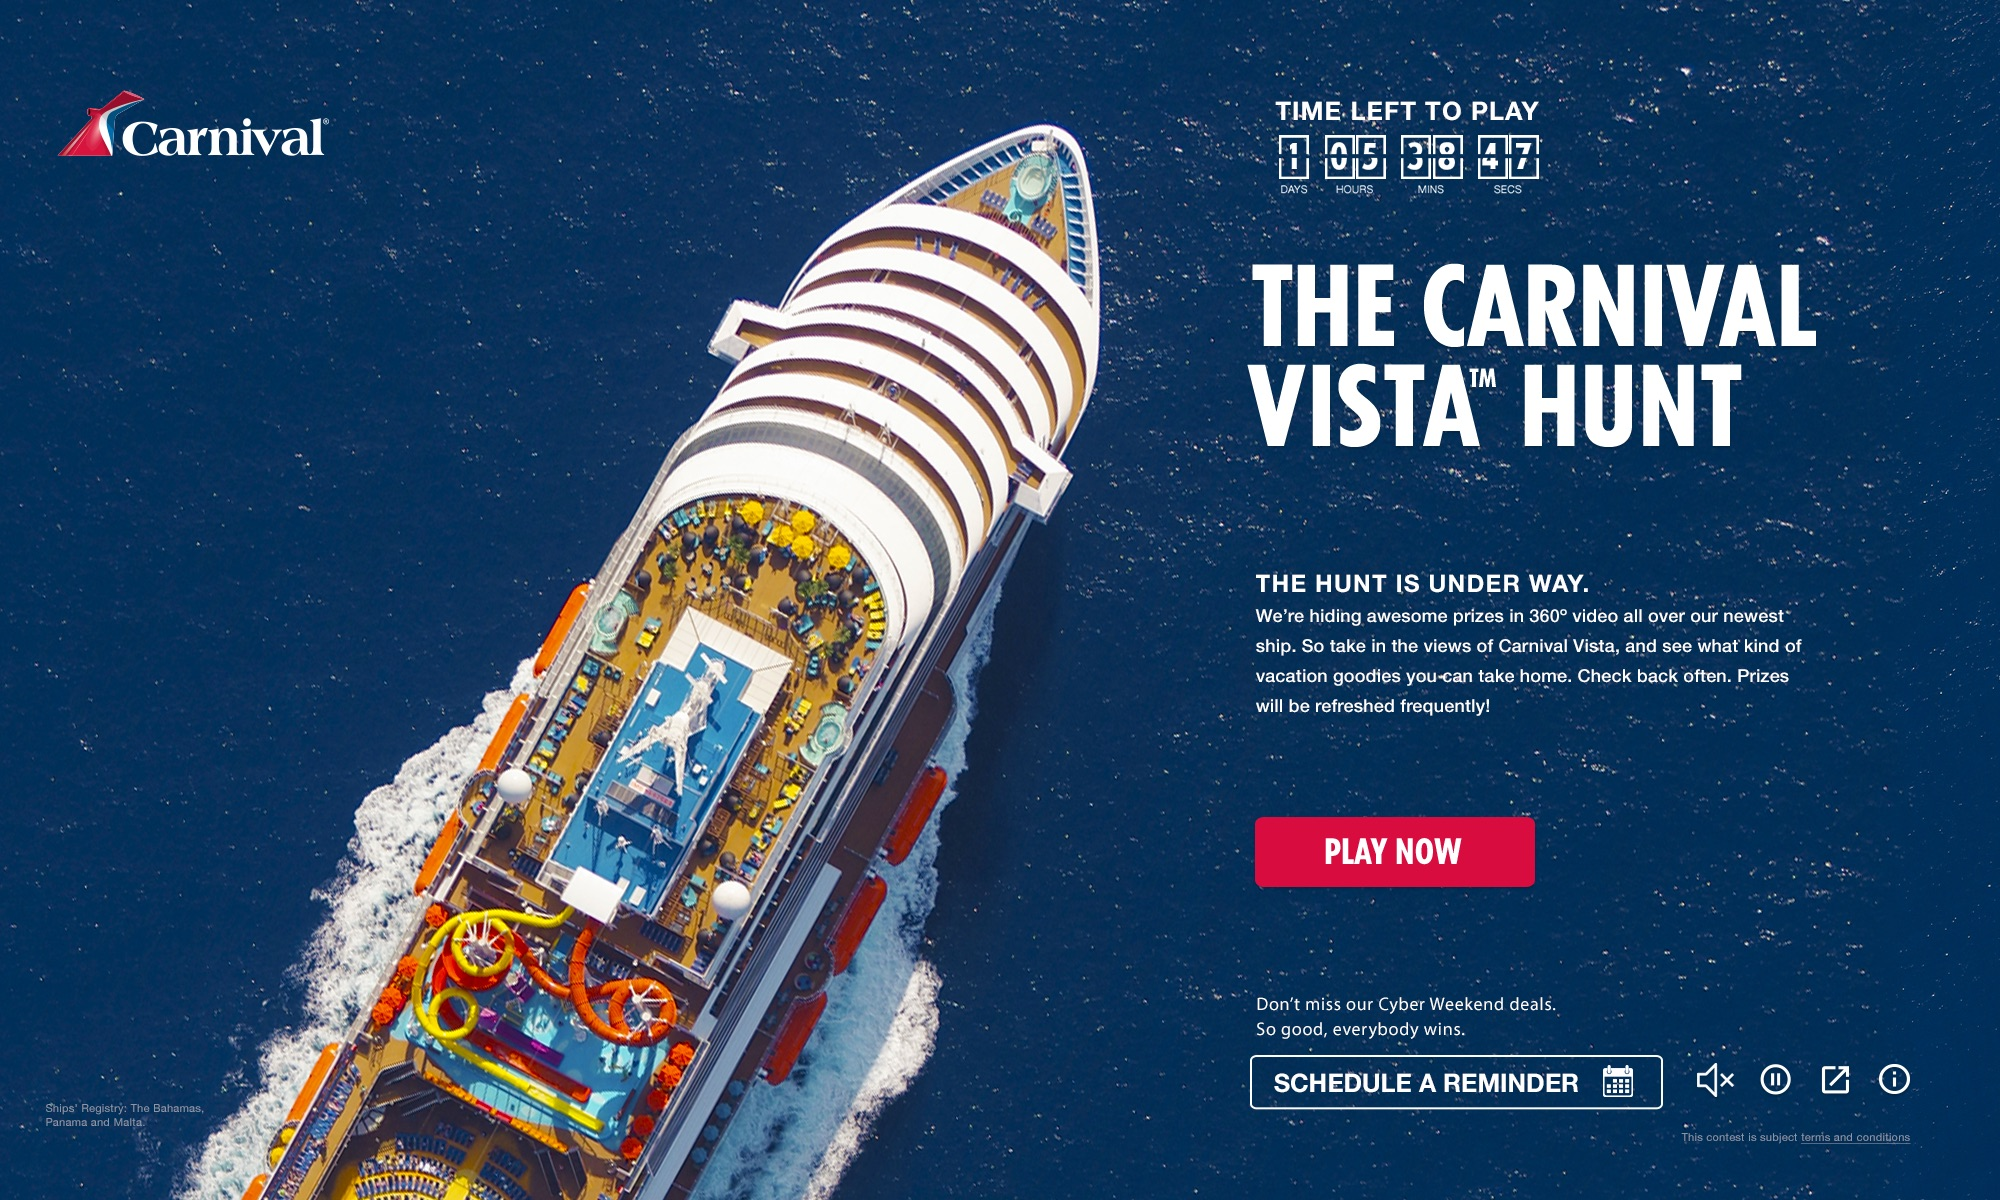 'Carnival Vista Hunt' Game Offers Wide Variety of Great Prizes, Including Chance to Win Free Cruises On the New 133,500-ton Ship